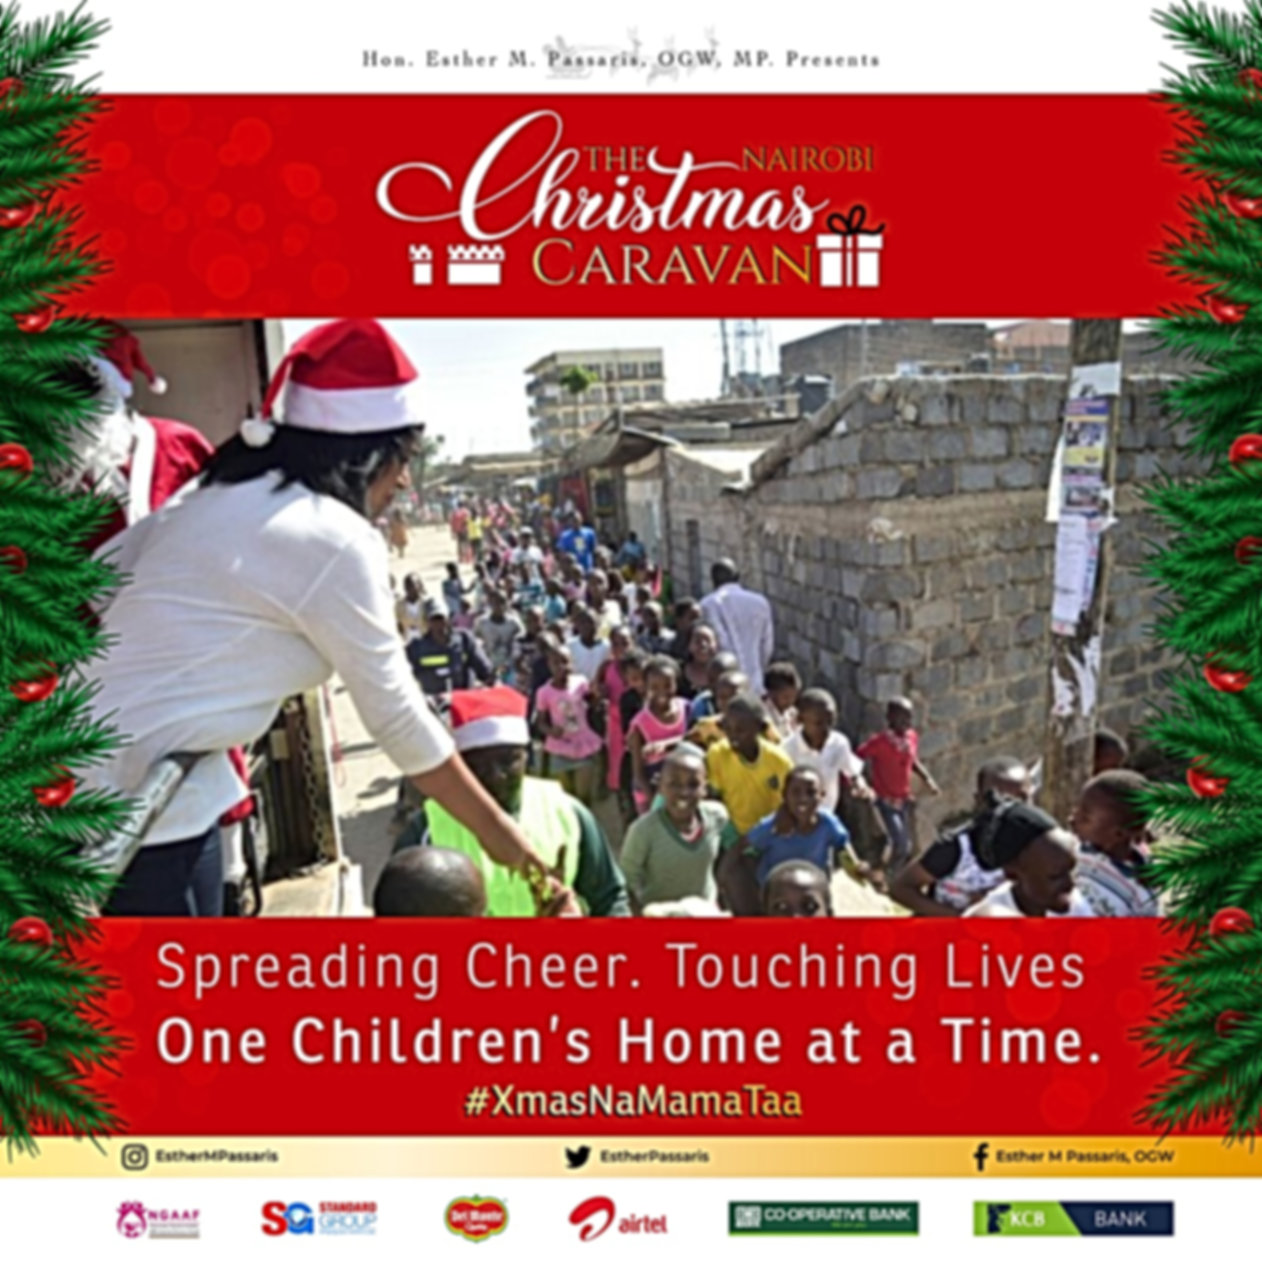 2019 christmas caravan courtey of Hon. Esther M Passaris